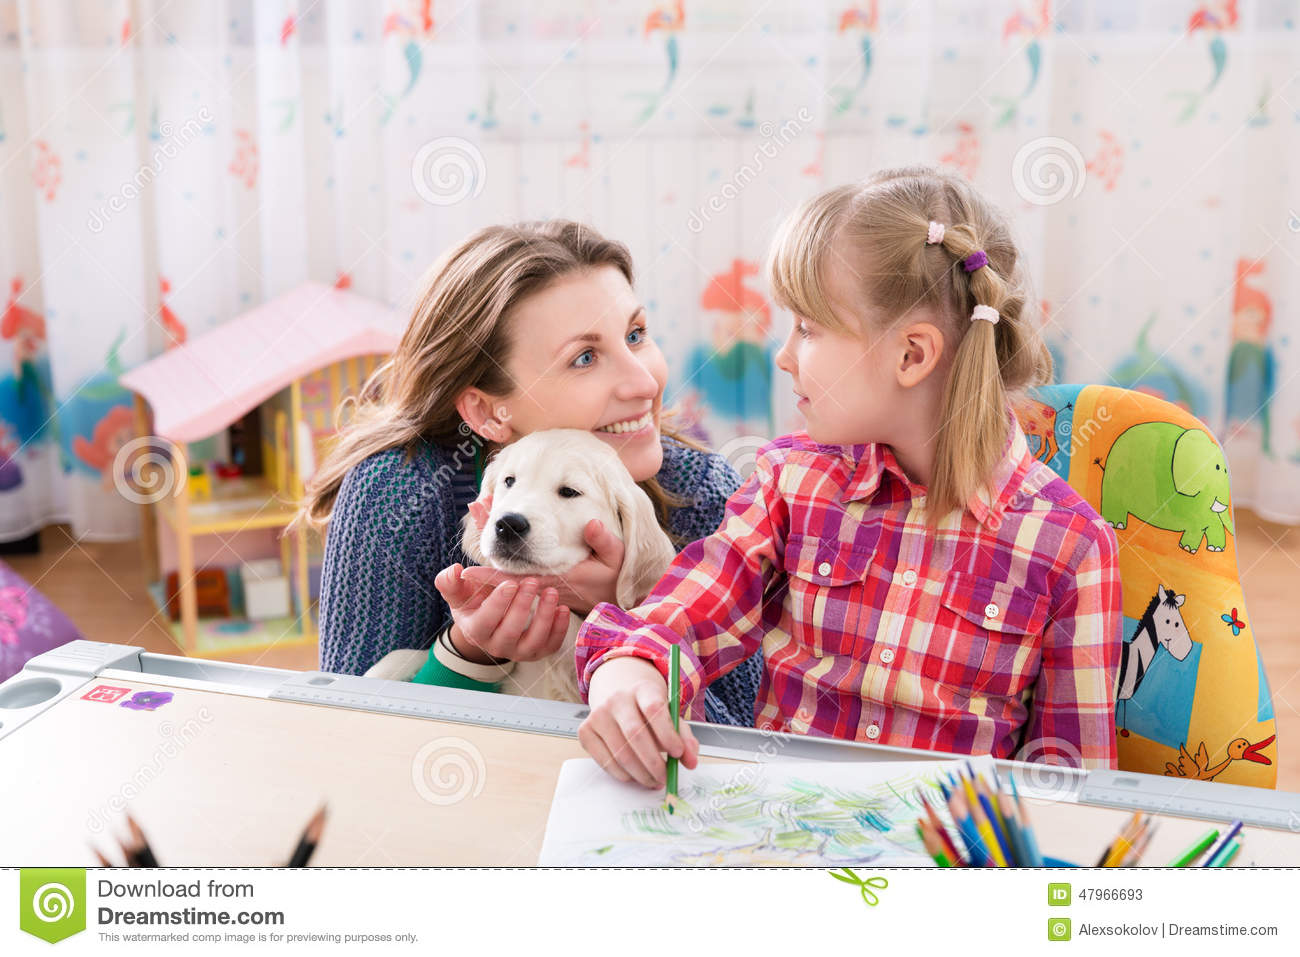 Mother And Daughter With Dog Stock Photo - Image: 58473266 |Dog Mom And Daughter